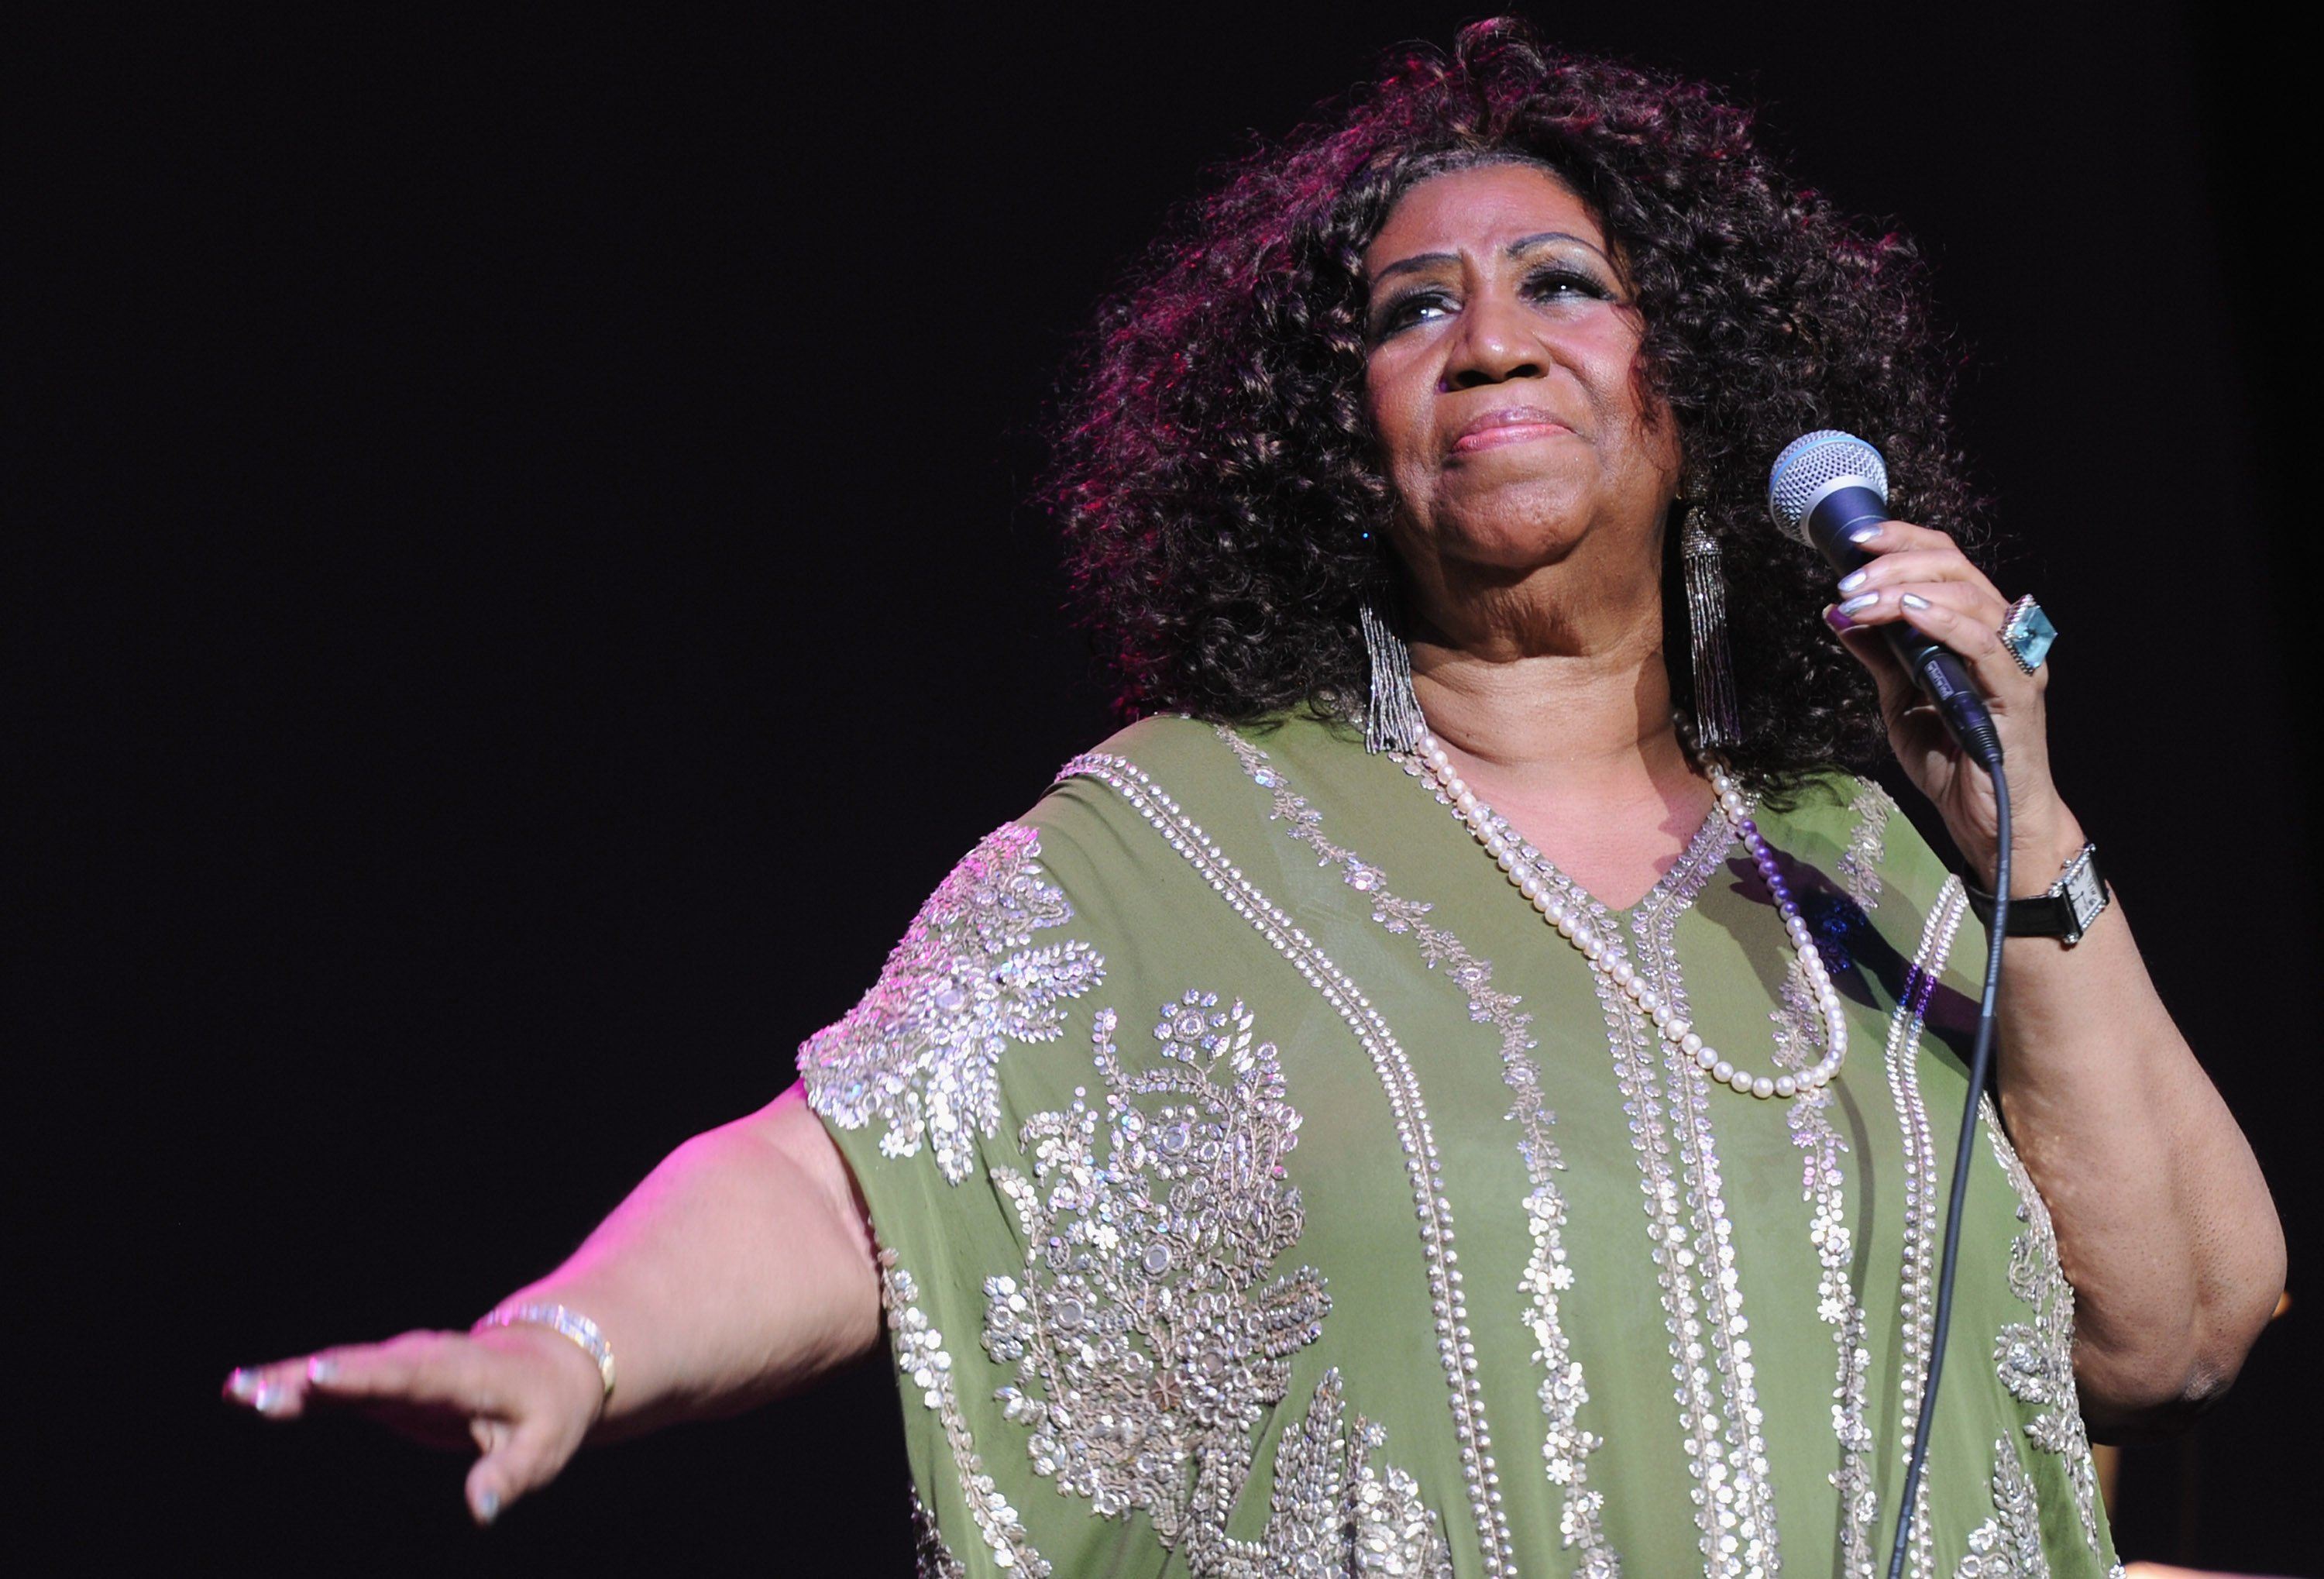 Aretha Franklin performs at The Fox Theatre on March 5, 2012 in Atlanta, Georgia | Photo: Getty Images